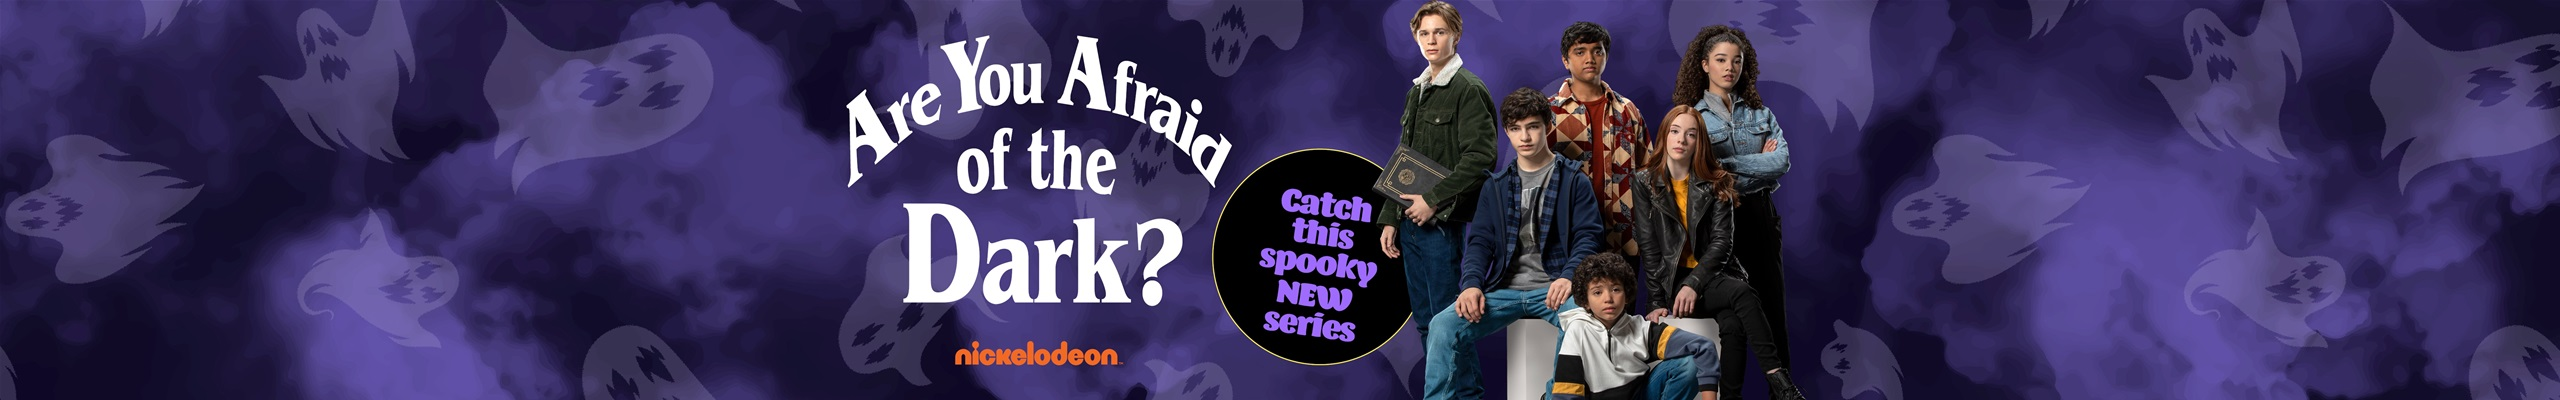 Spooky NEW series alert! Nickelodeon's Are You Afraid of the Dark? is back for Season 2!